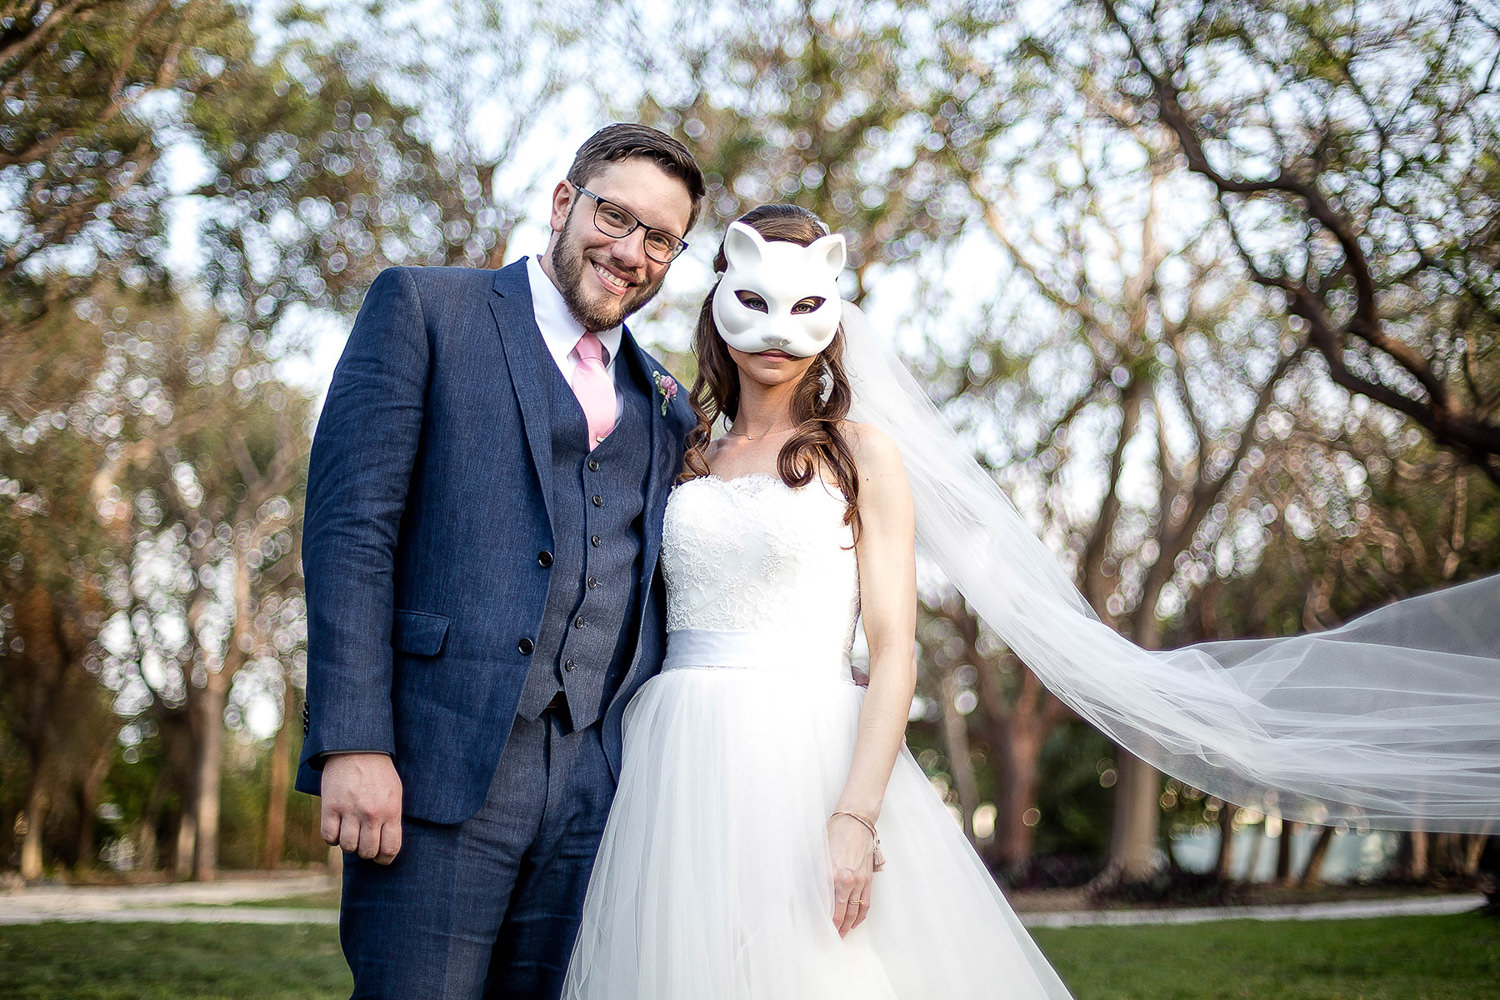 miami-wedding-photographer-quirky-fun-hipster-boho-authentic-photography.jpg